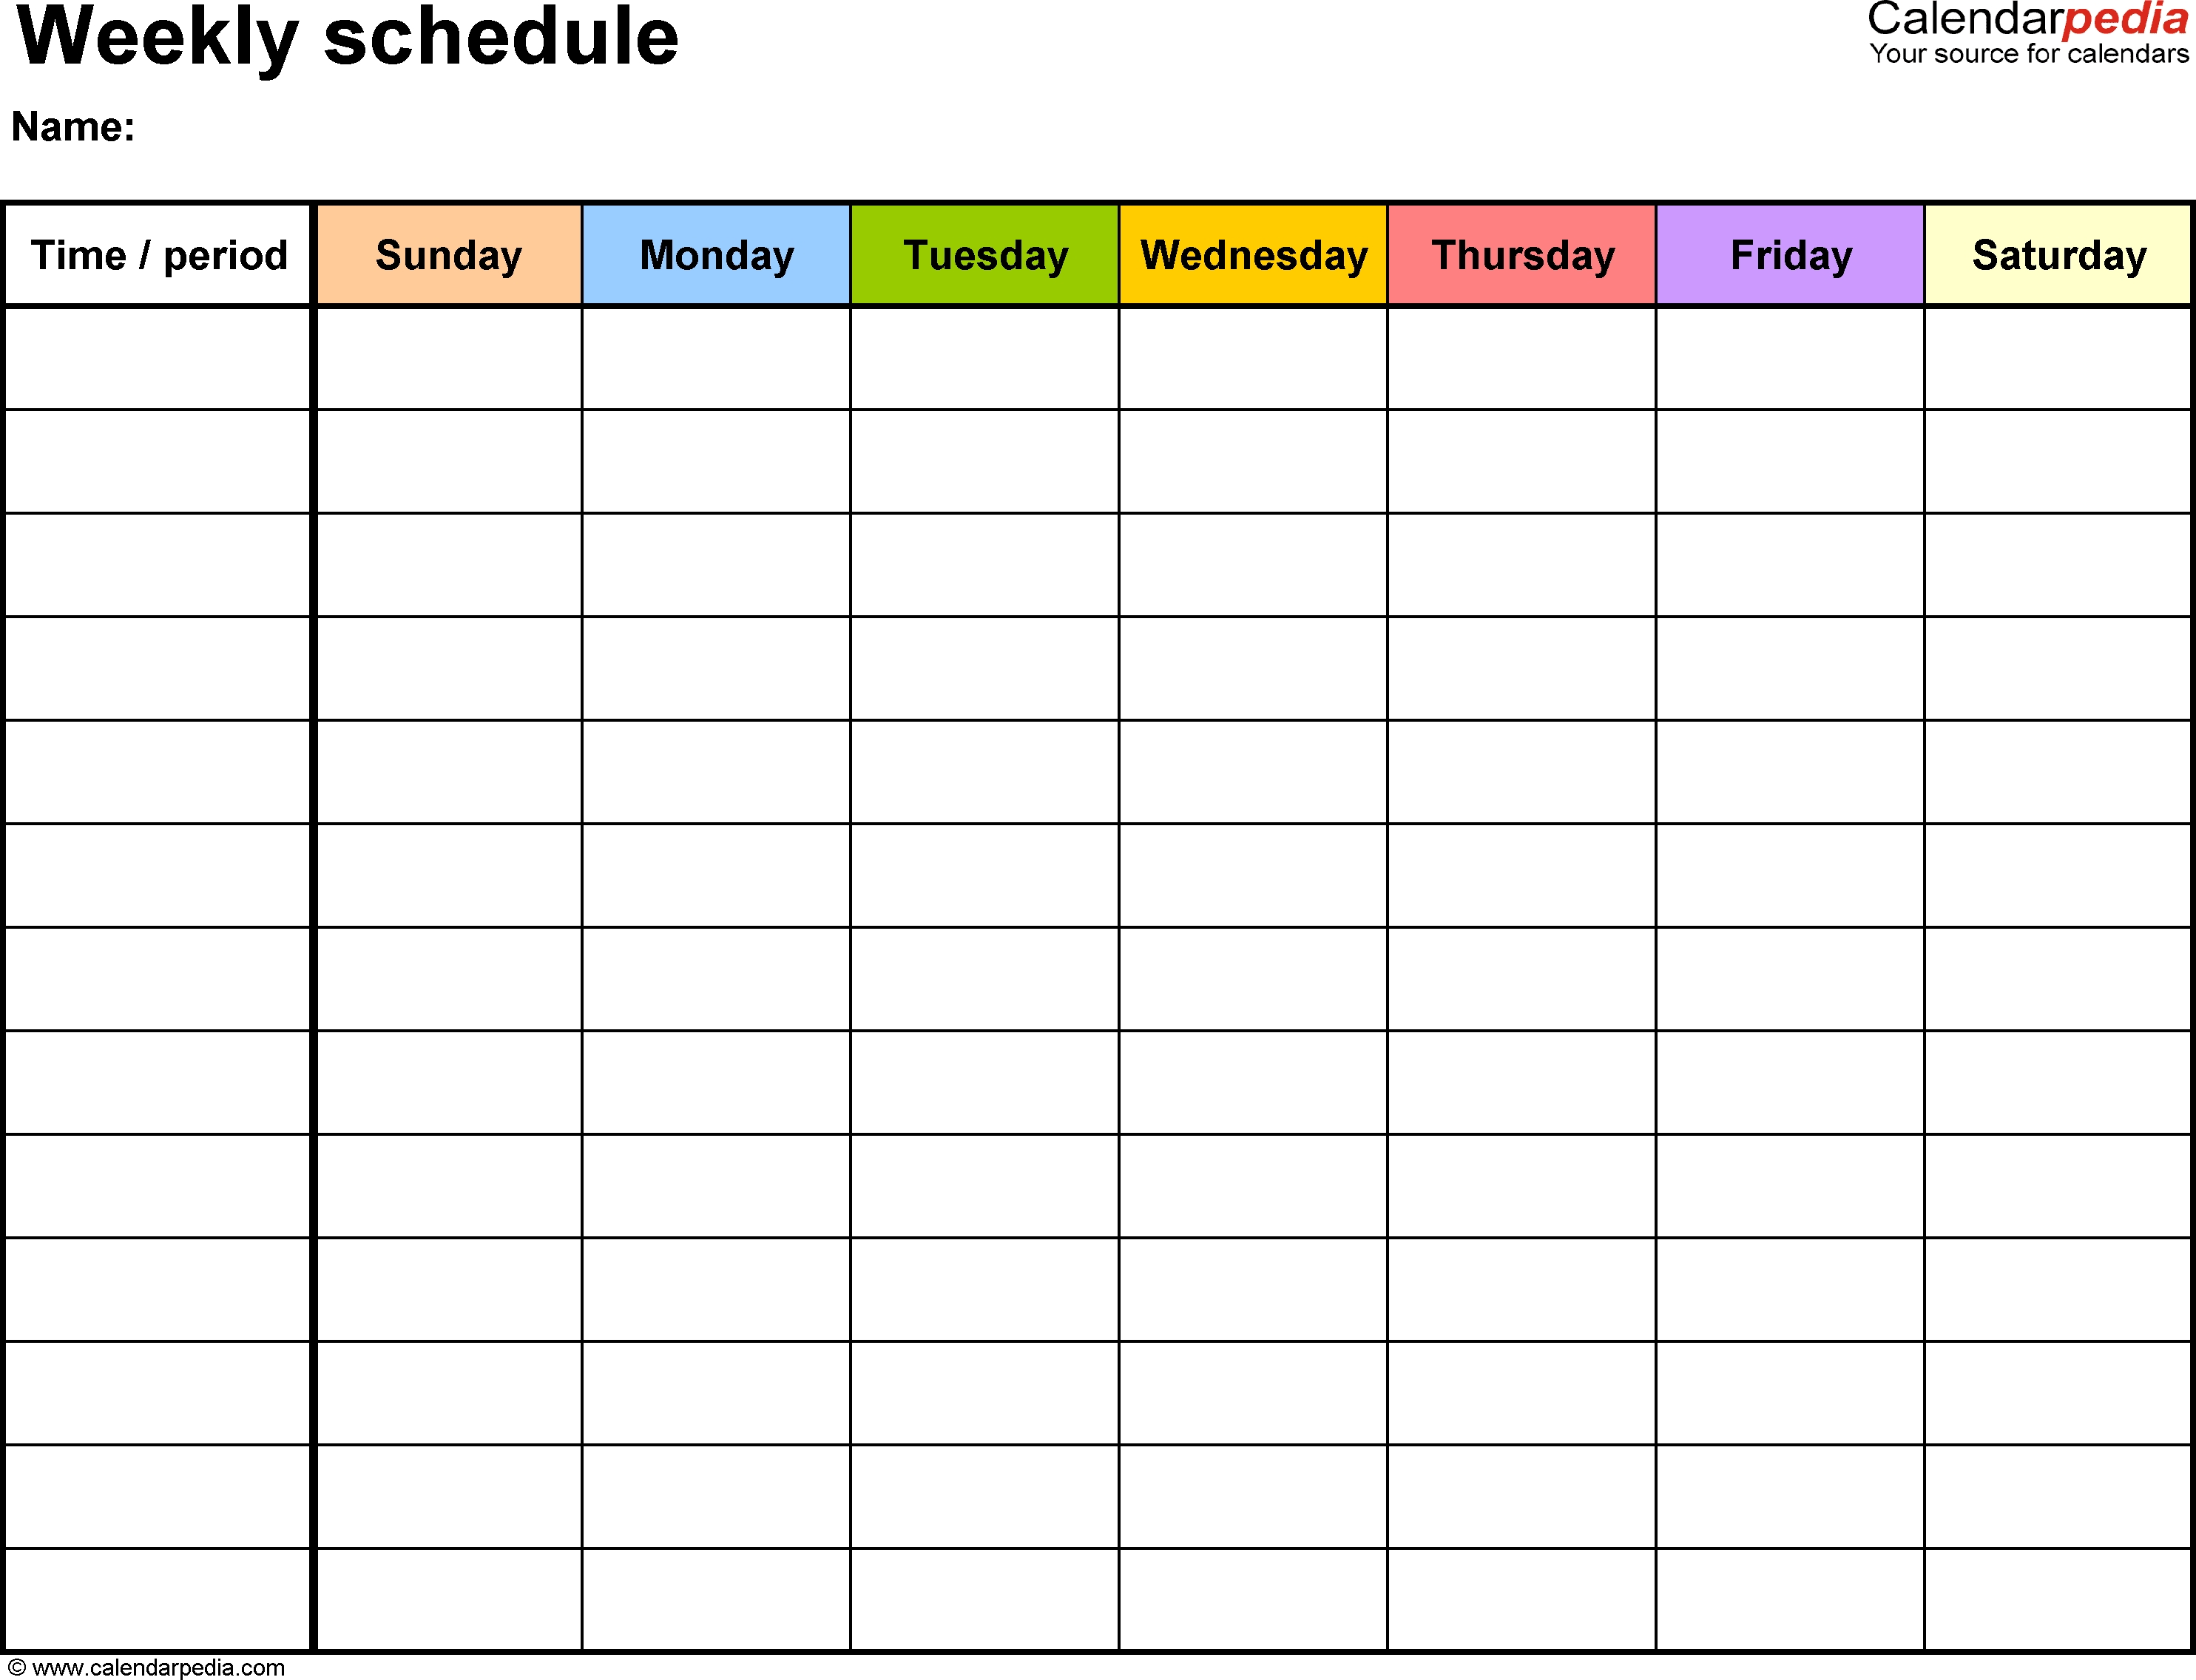 Free Weekly Schedule Templates For Word - 18 Templates pertaining to Monday Through Friday Monthly Calendar